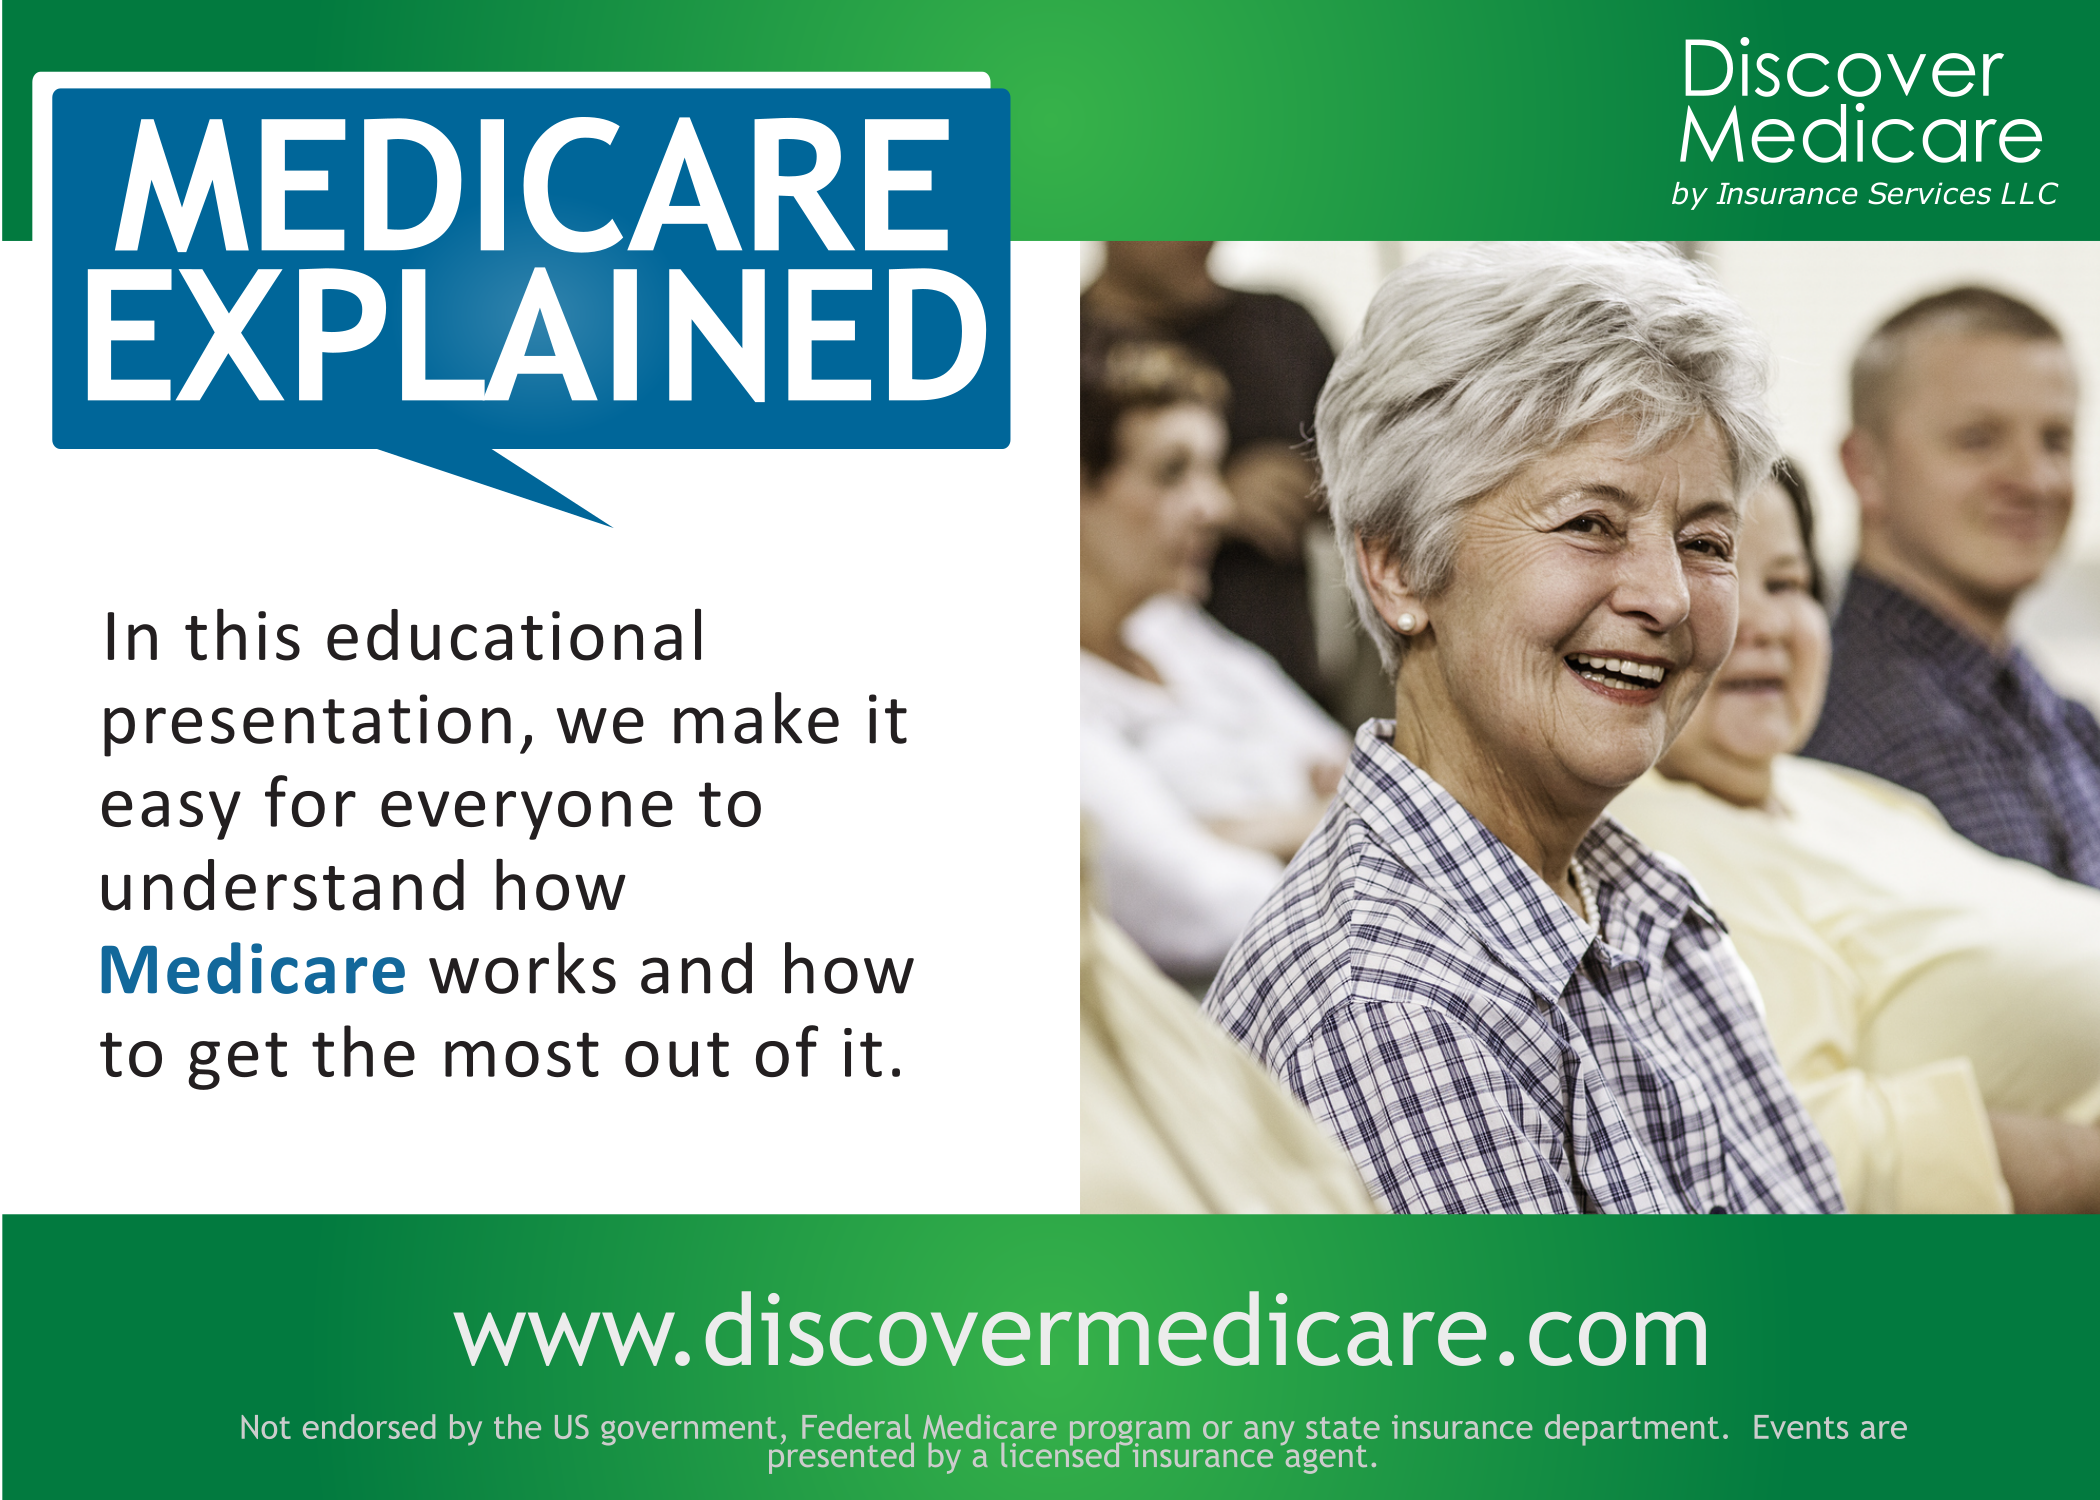 Discover Medicare